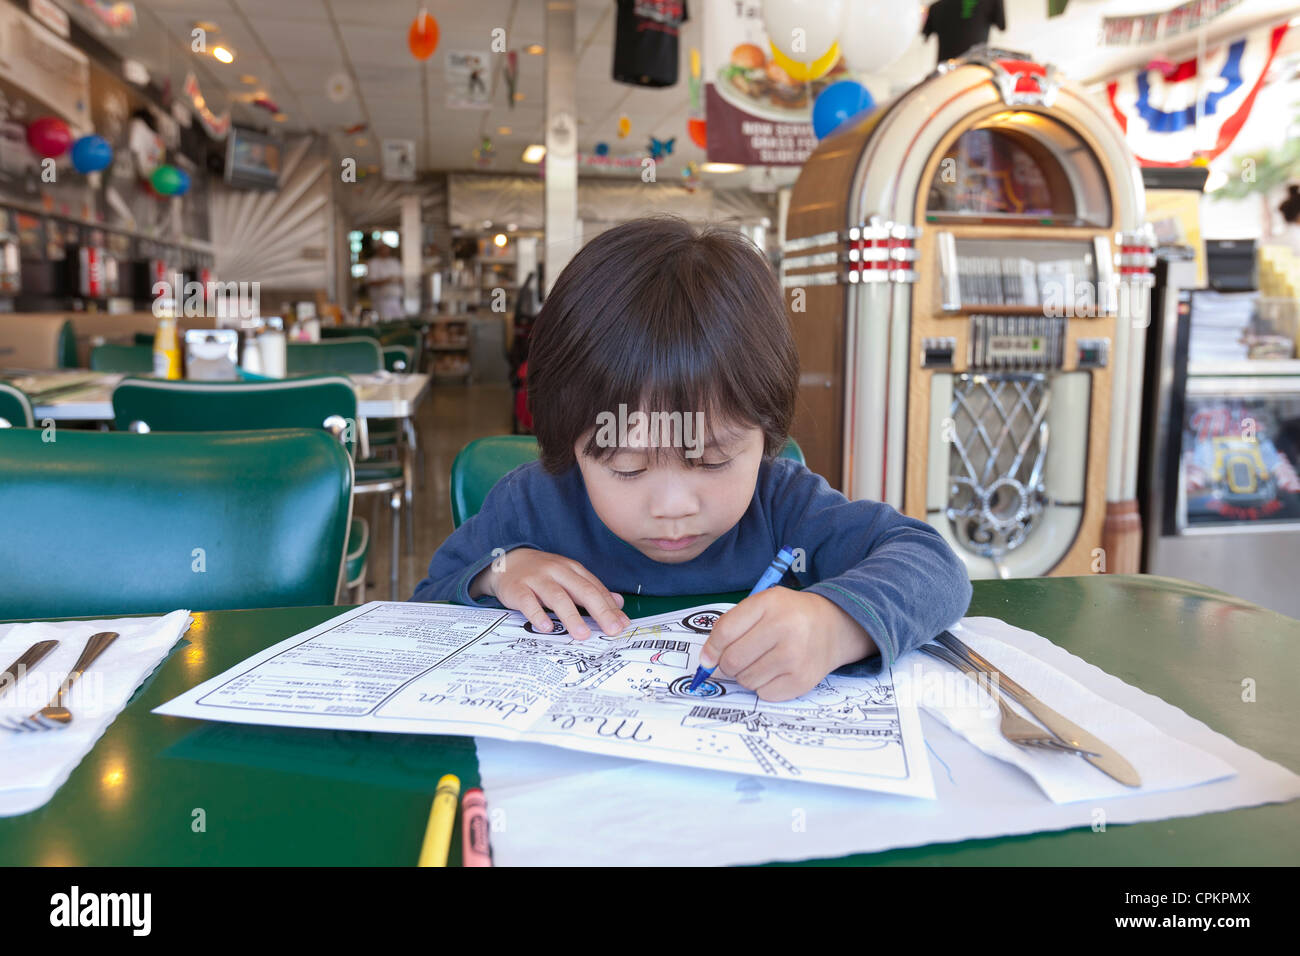 A young Asian boy coloring a children's diner menu - Stock Image